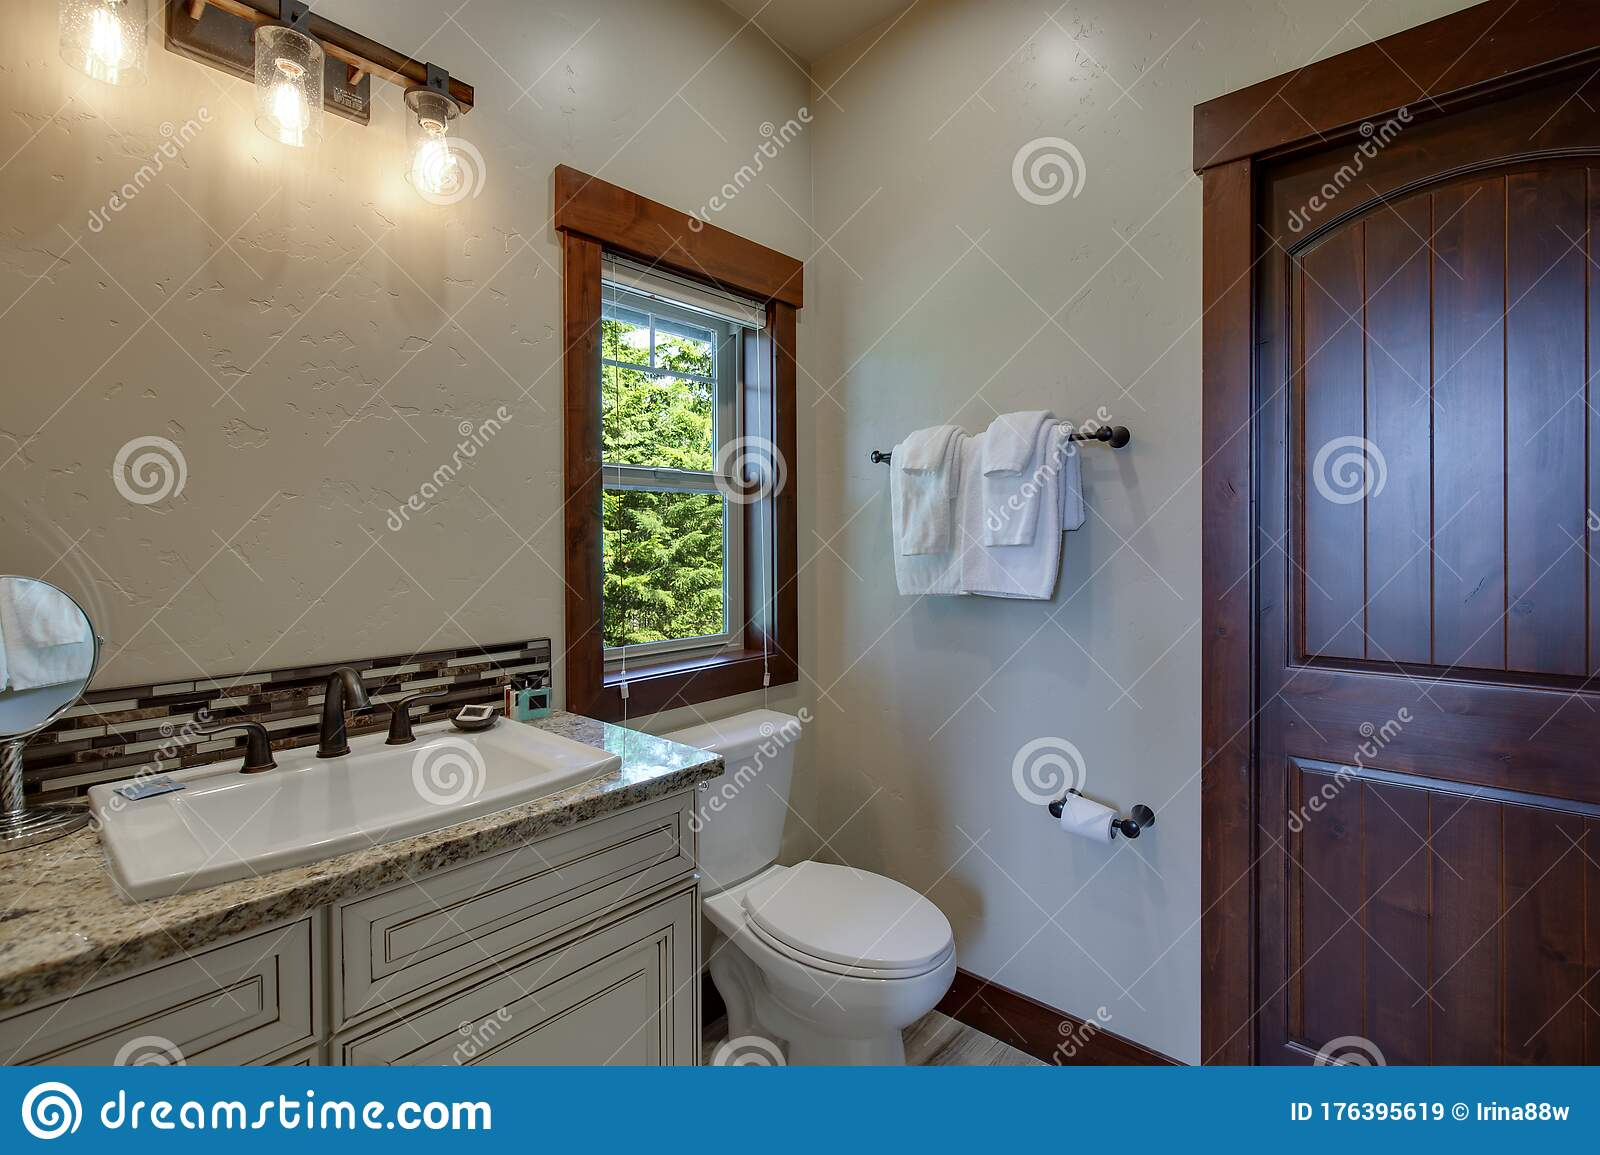 New Luxury Bathrooms With Rich Color Wooden Doors Natural Beige Countertops White Cabinets And Sinks Bright Clean Grey Walls Stock Image Image Of Light Cabinets 176395619